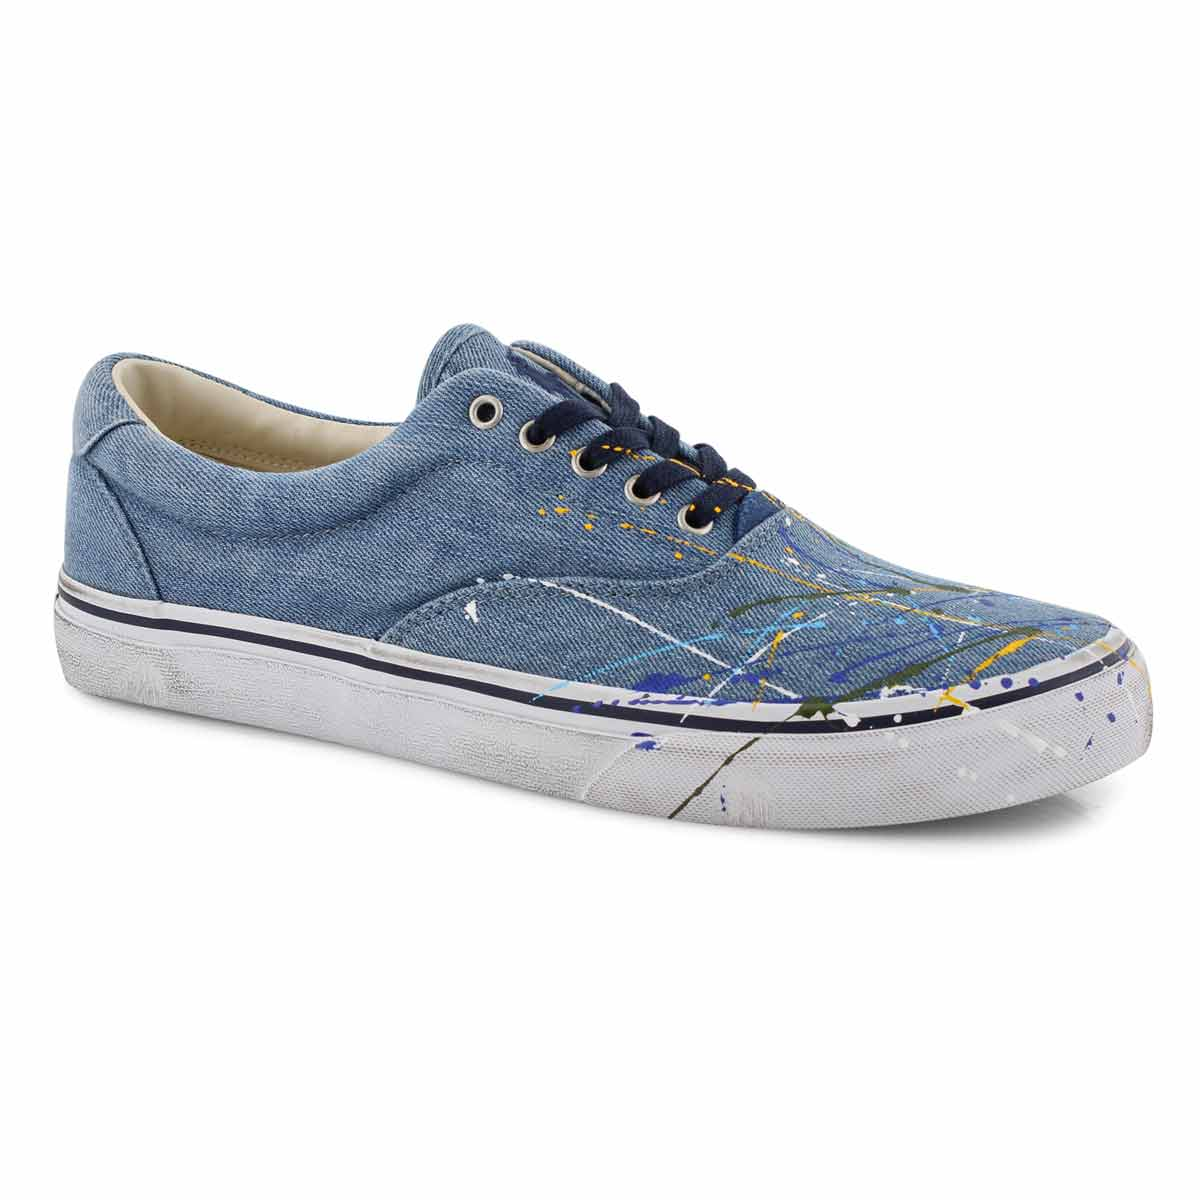 Mns Thorton washed denim lace up sneaker